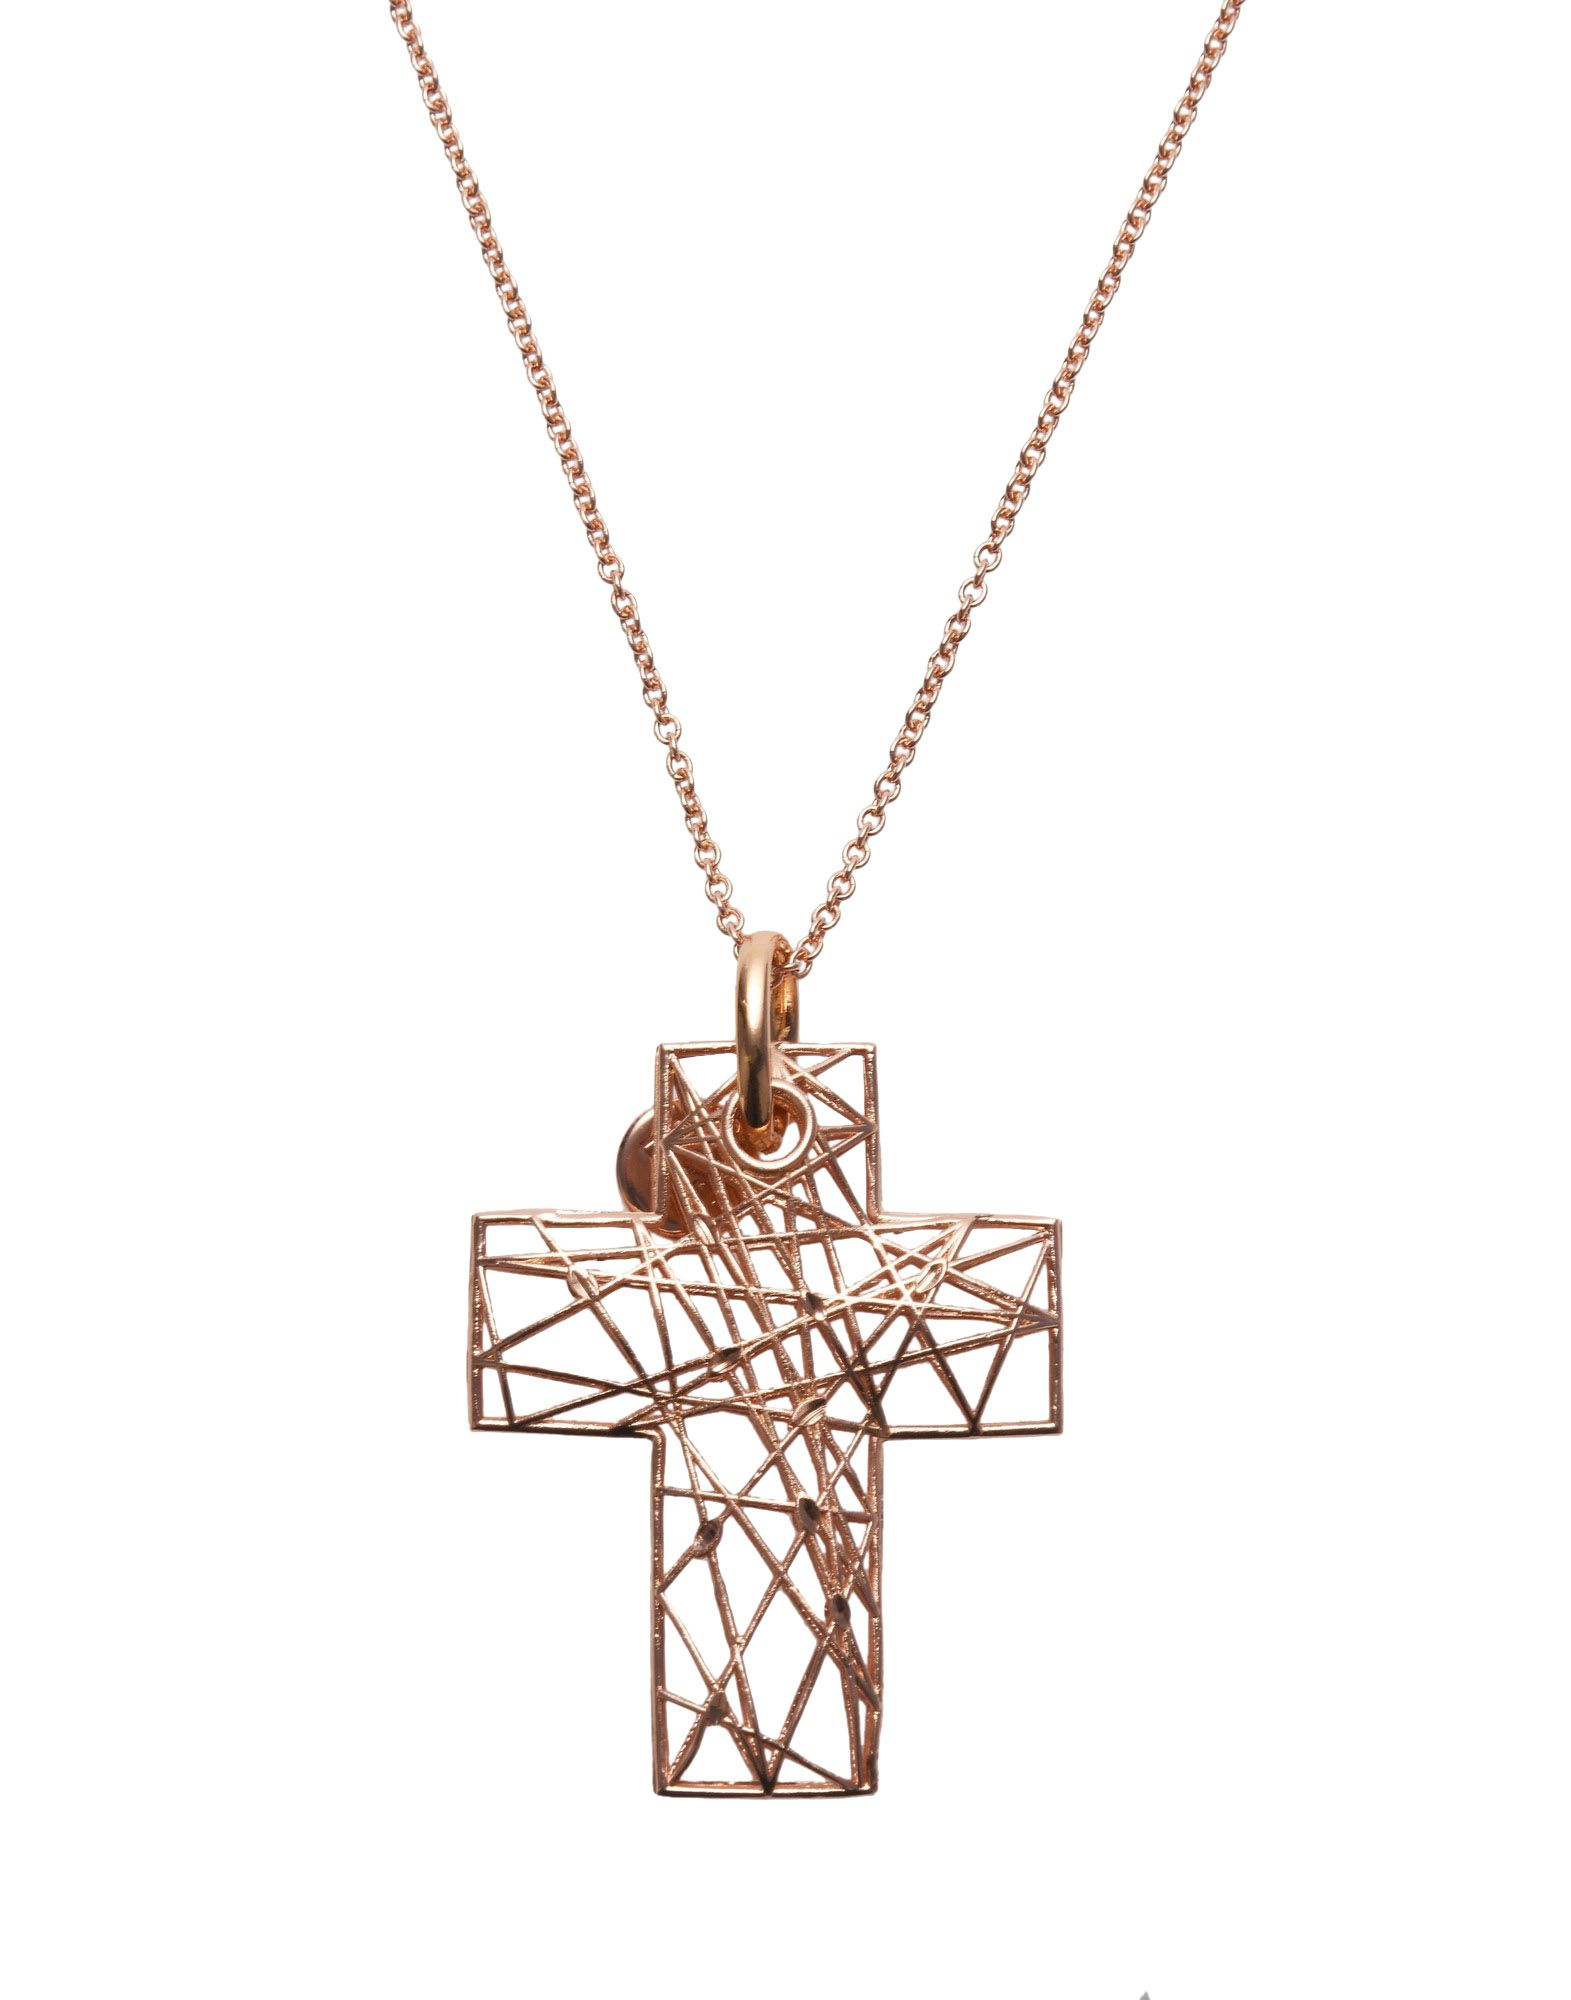 BLISS Necklace in Copper